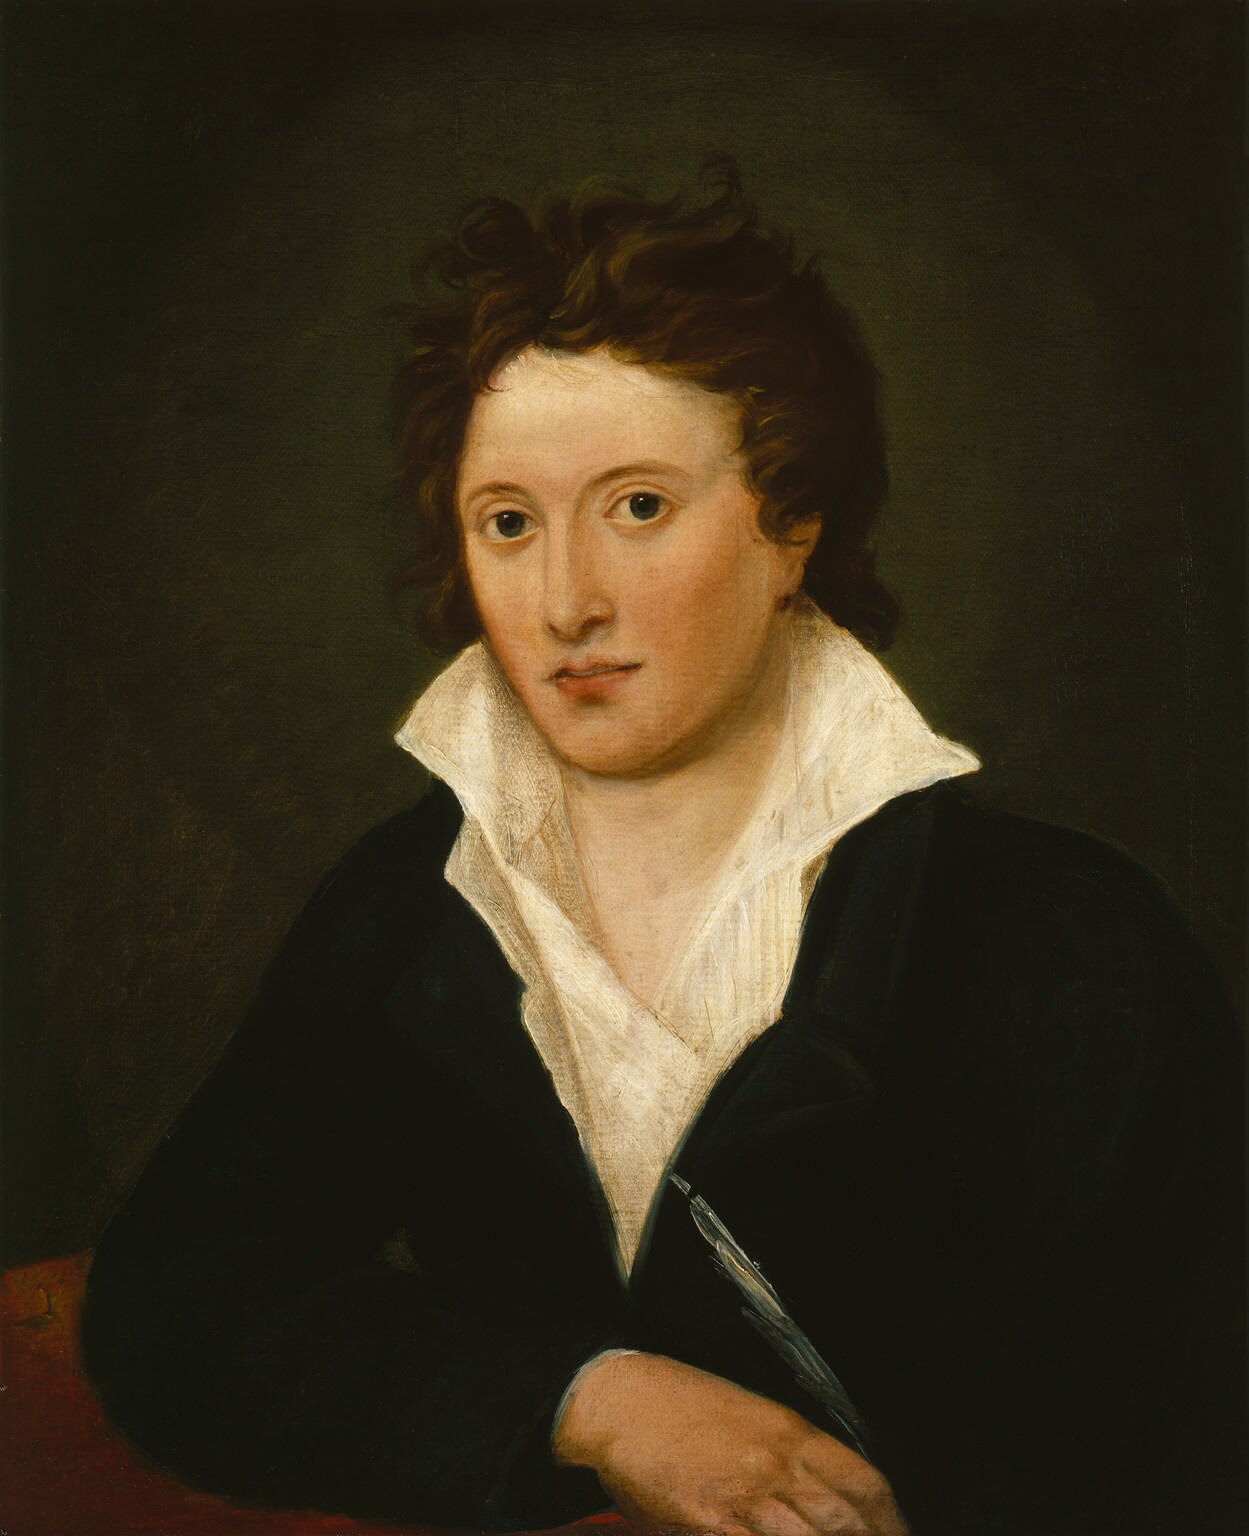 Arquivo: Retrato de Percy Bysshe Shelley por Curran, 1819.jpg